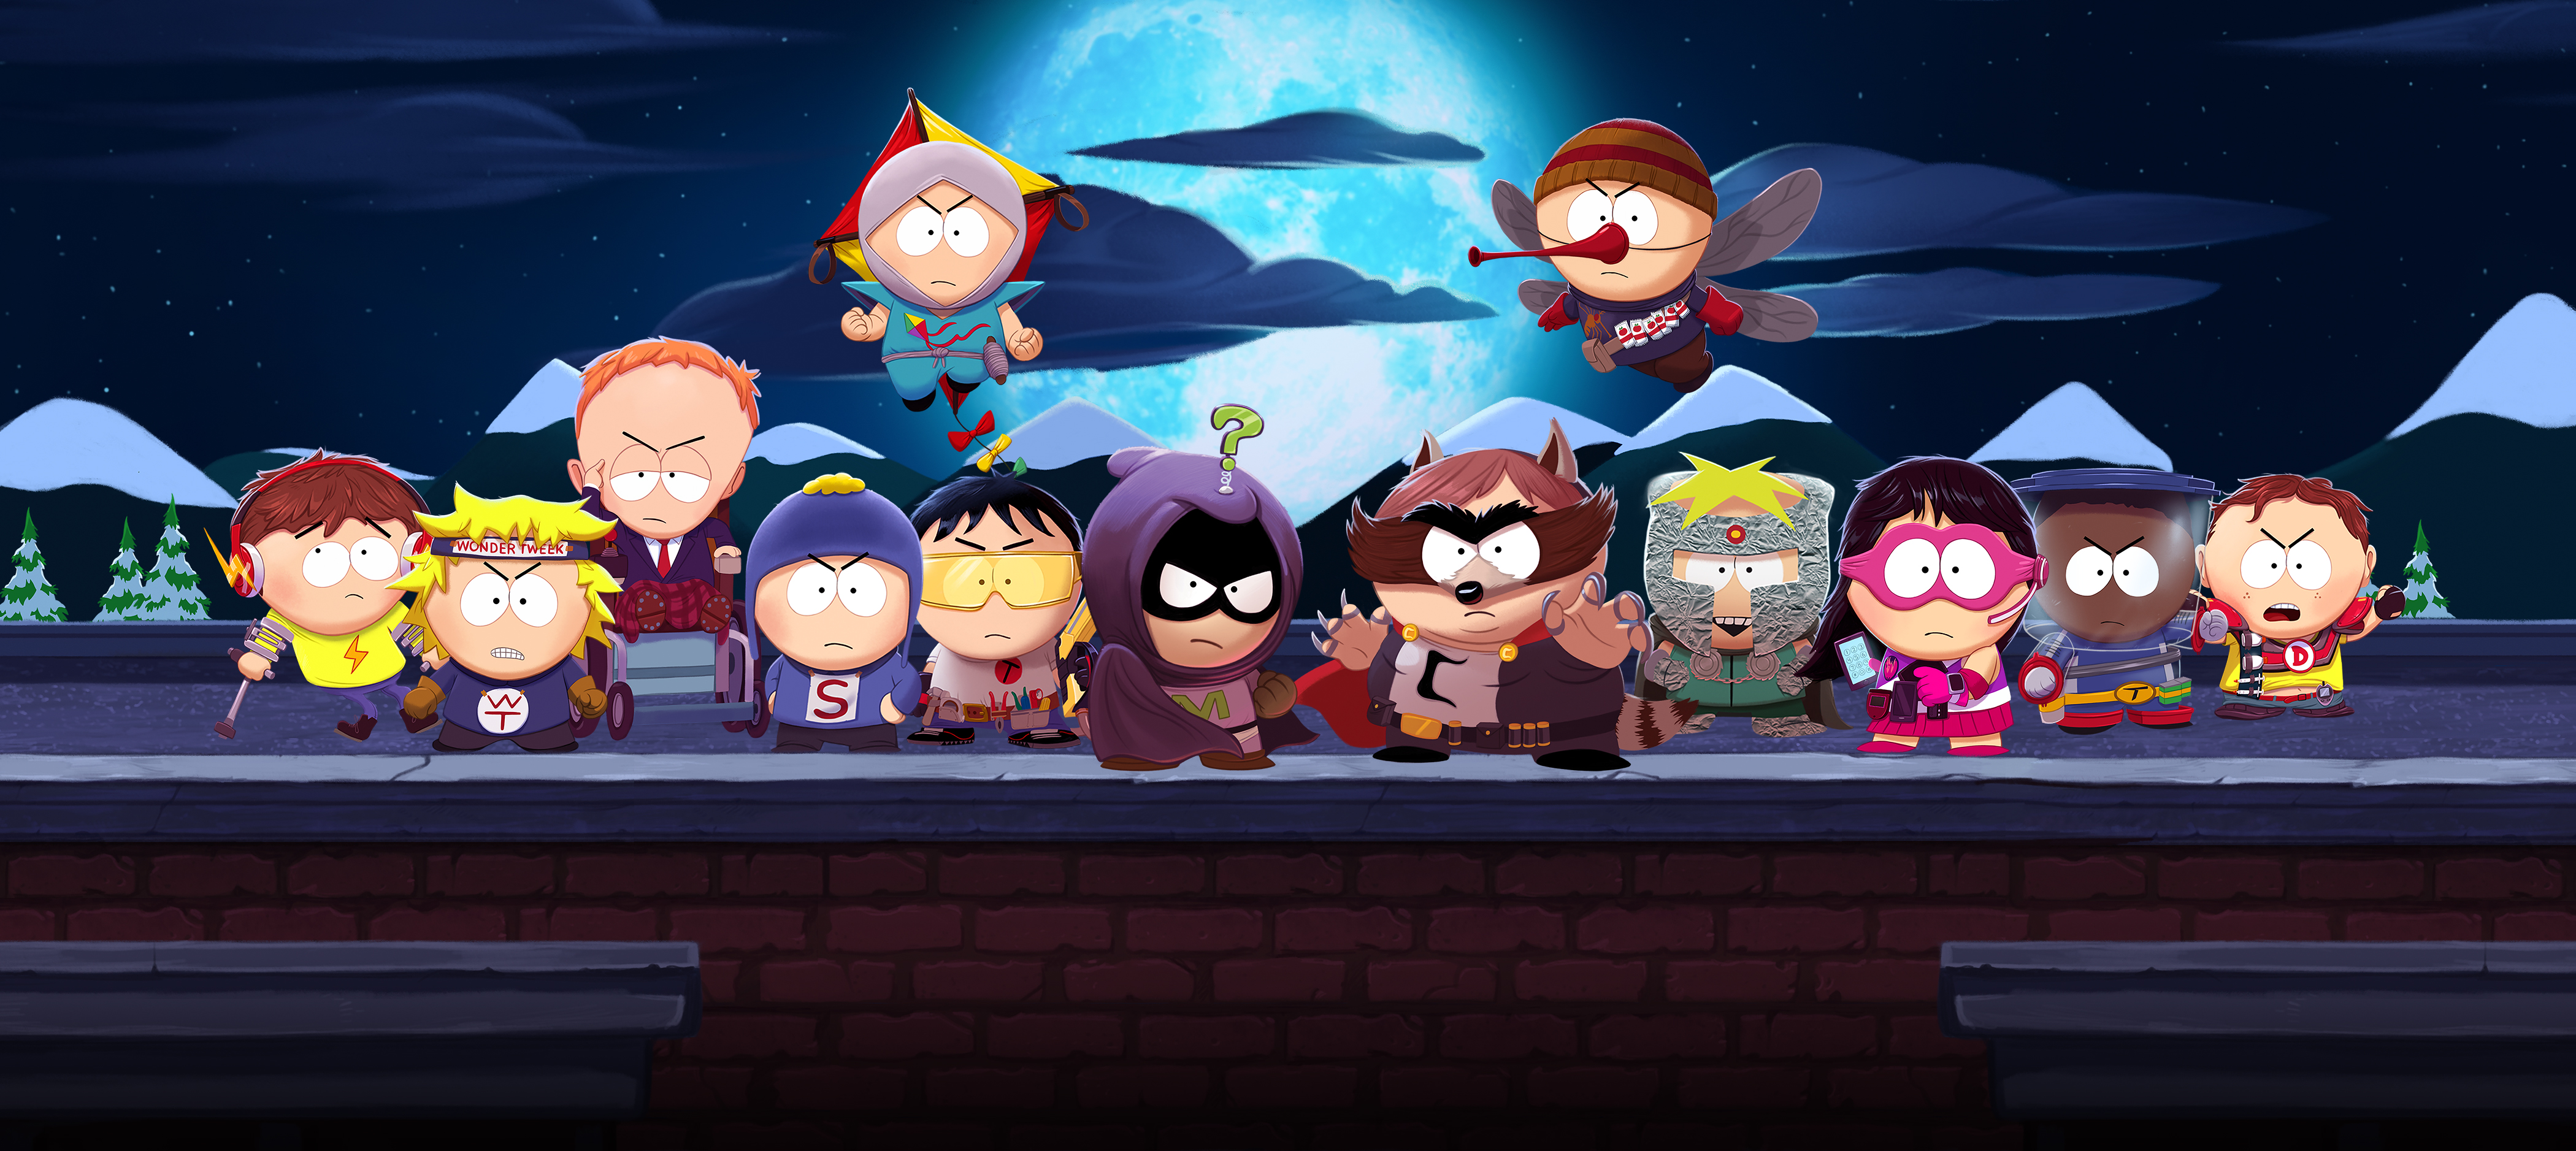 South Park: The Fractured But Whole hé lộ cấu hình PC